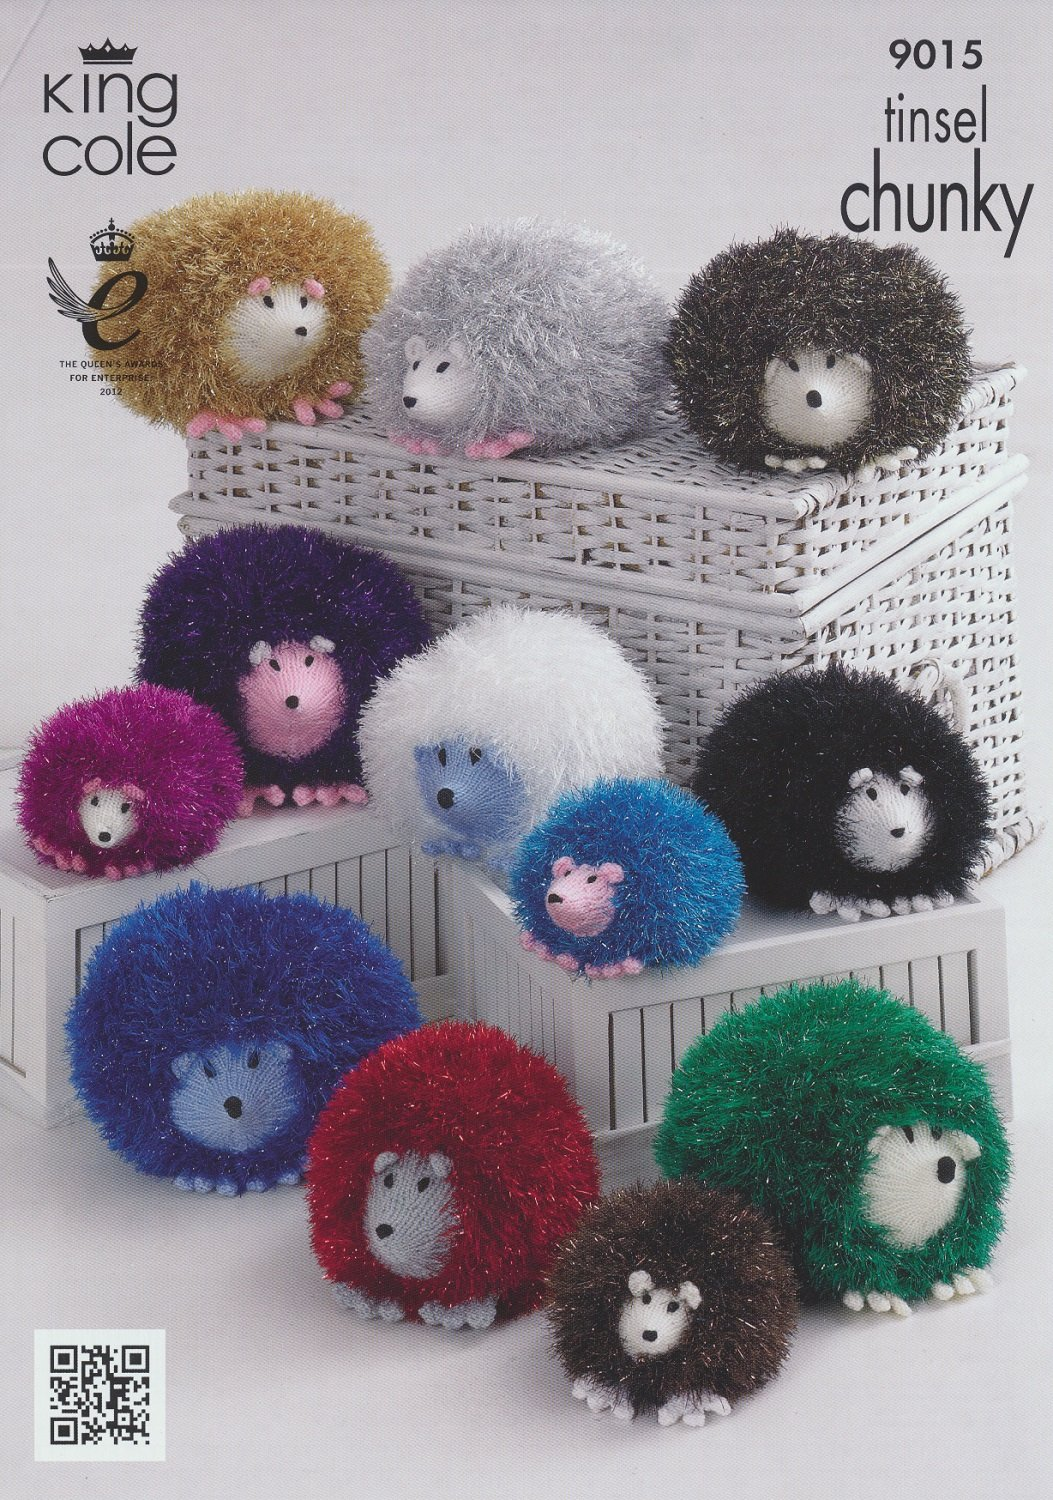 King cole hedgehog toys knitting pattern 9015 chunky amazon king cole hedgehog toys knitting pattern 9015 chunky amazon kitchen home bankloansurffo Gallery